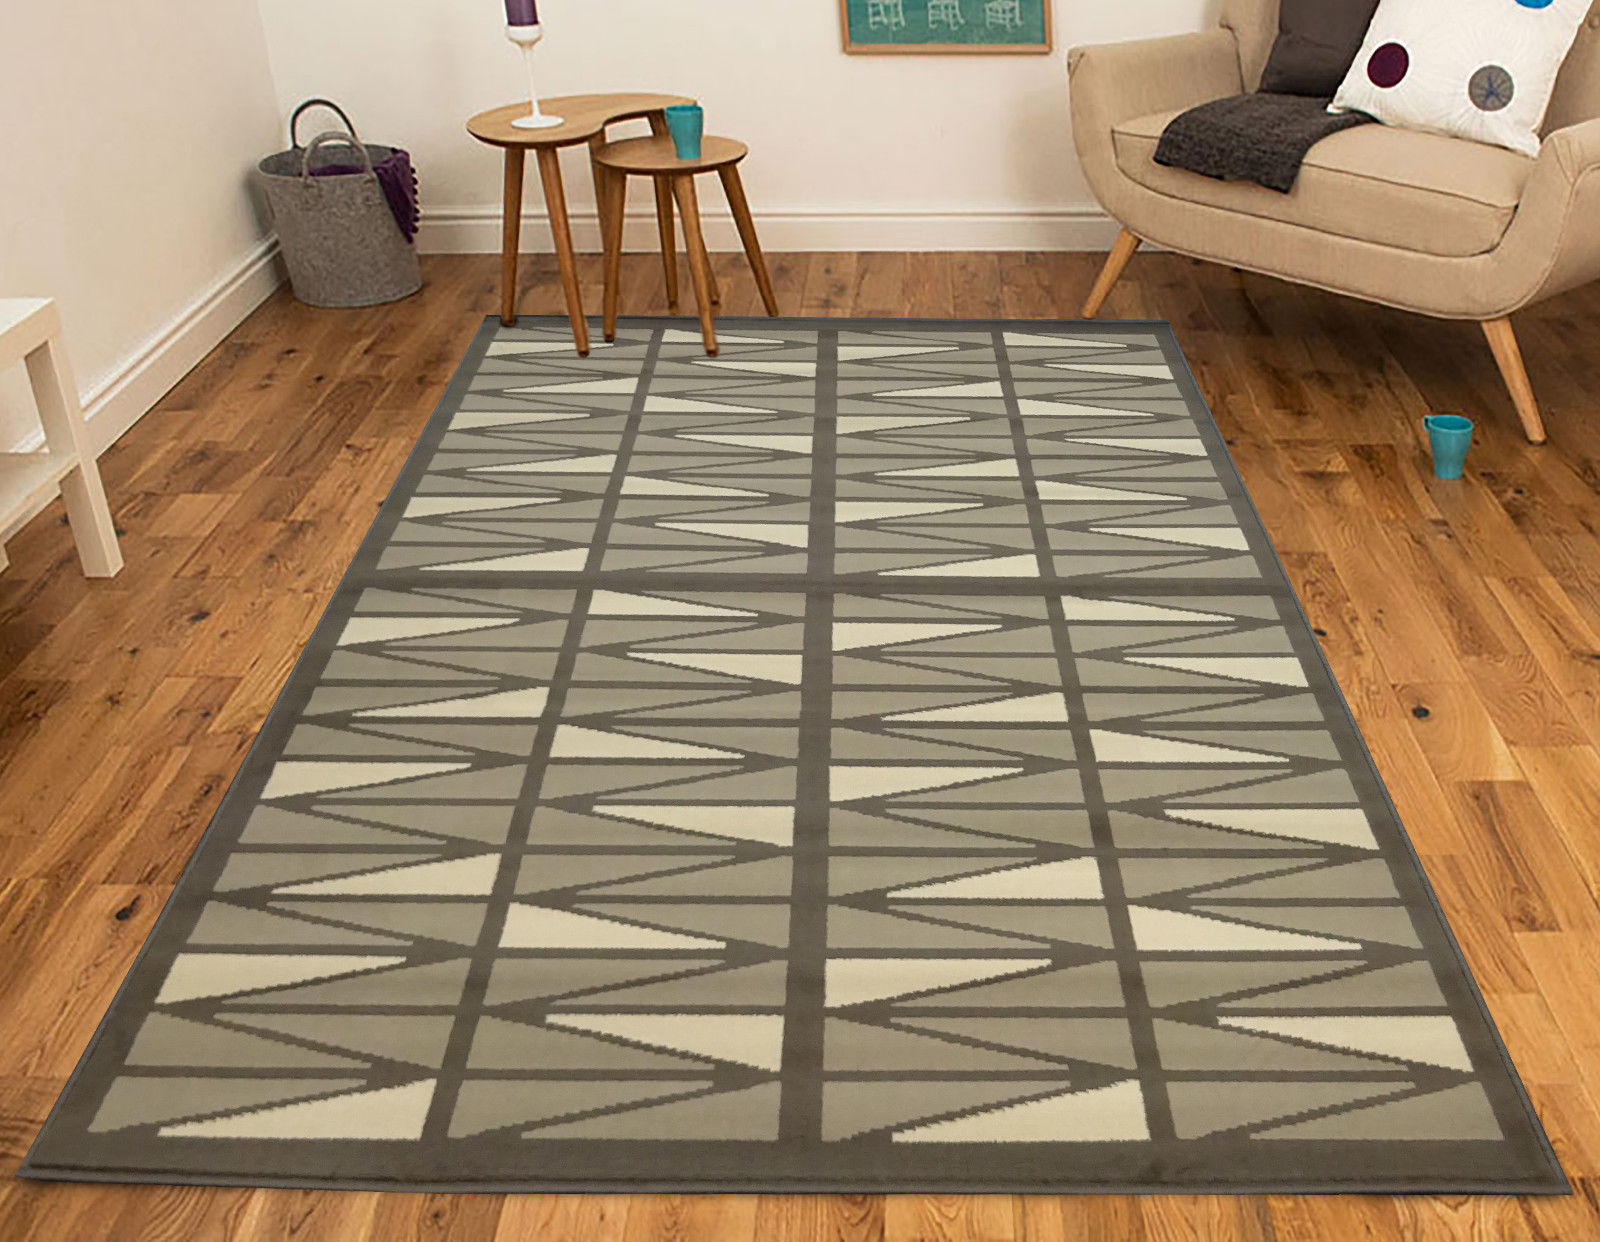 Hessian Rugs Modern Grey Rugs Uniquely Designed Modern Rugs 2361 H55